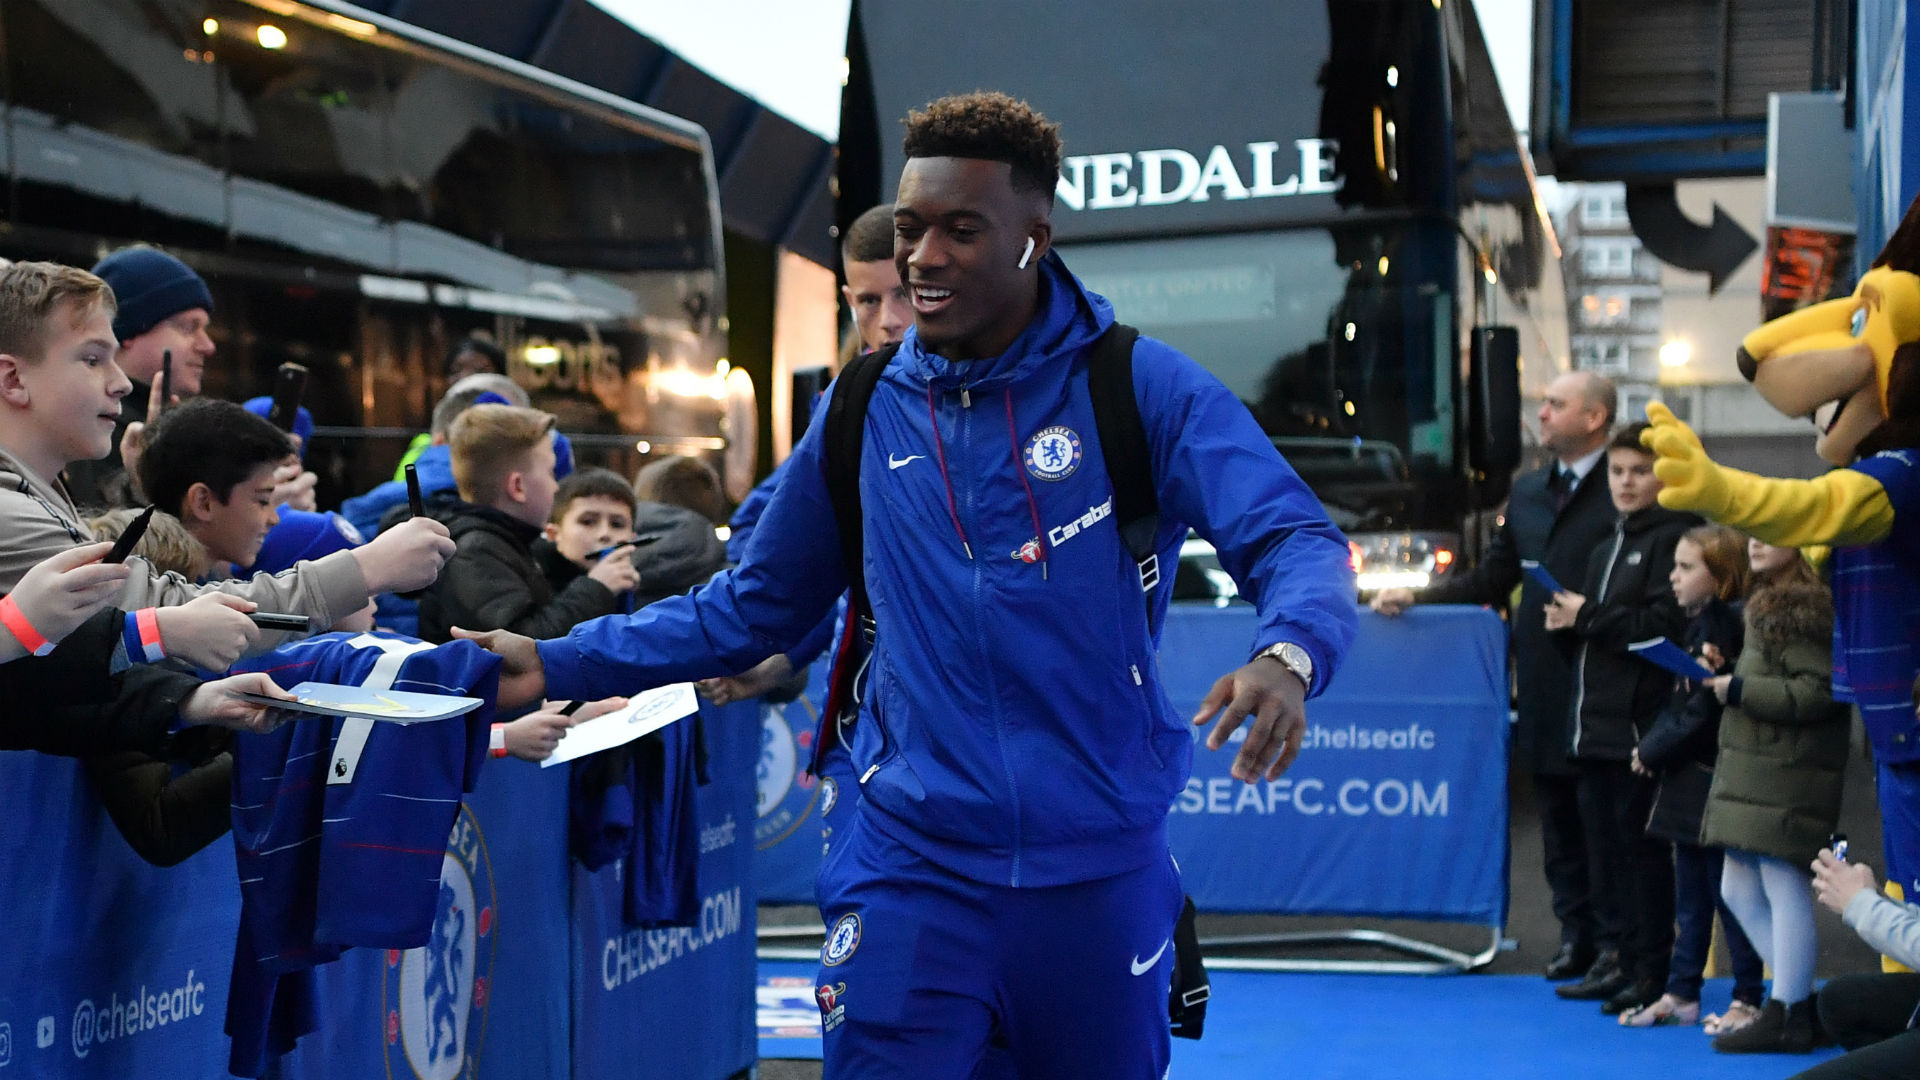 Hudson-Odoi 'an outstanding talent' - Bayern great Ballack hails Chelsea youngster